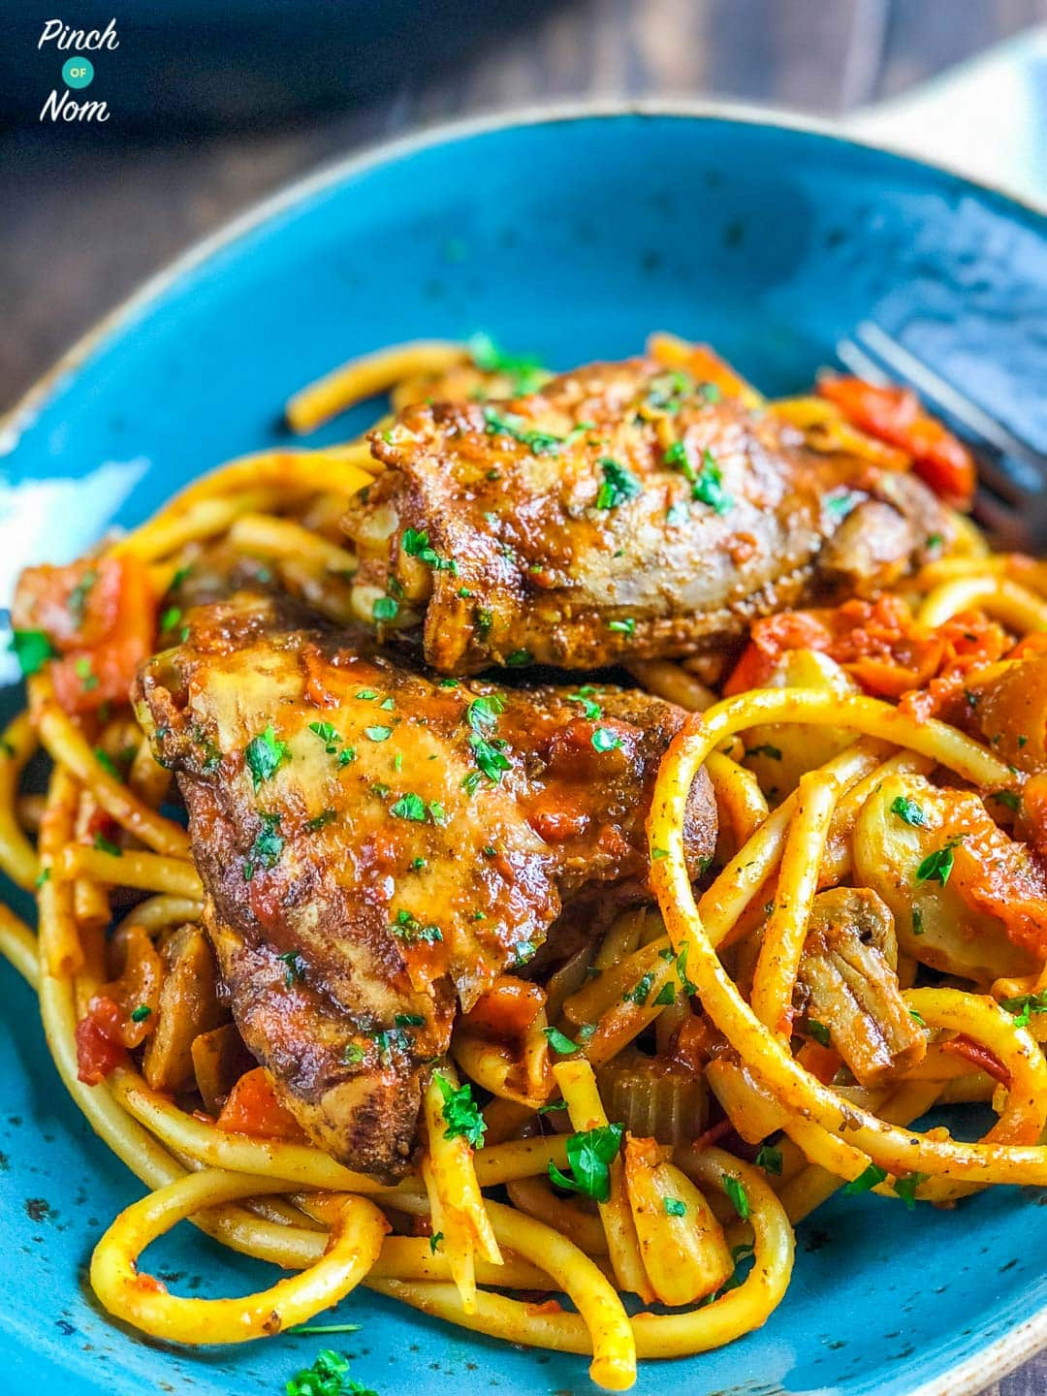 Top Slimming & Weight Watchers Friendly Pasta Bake Recipes ...